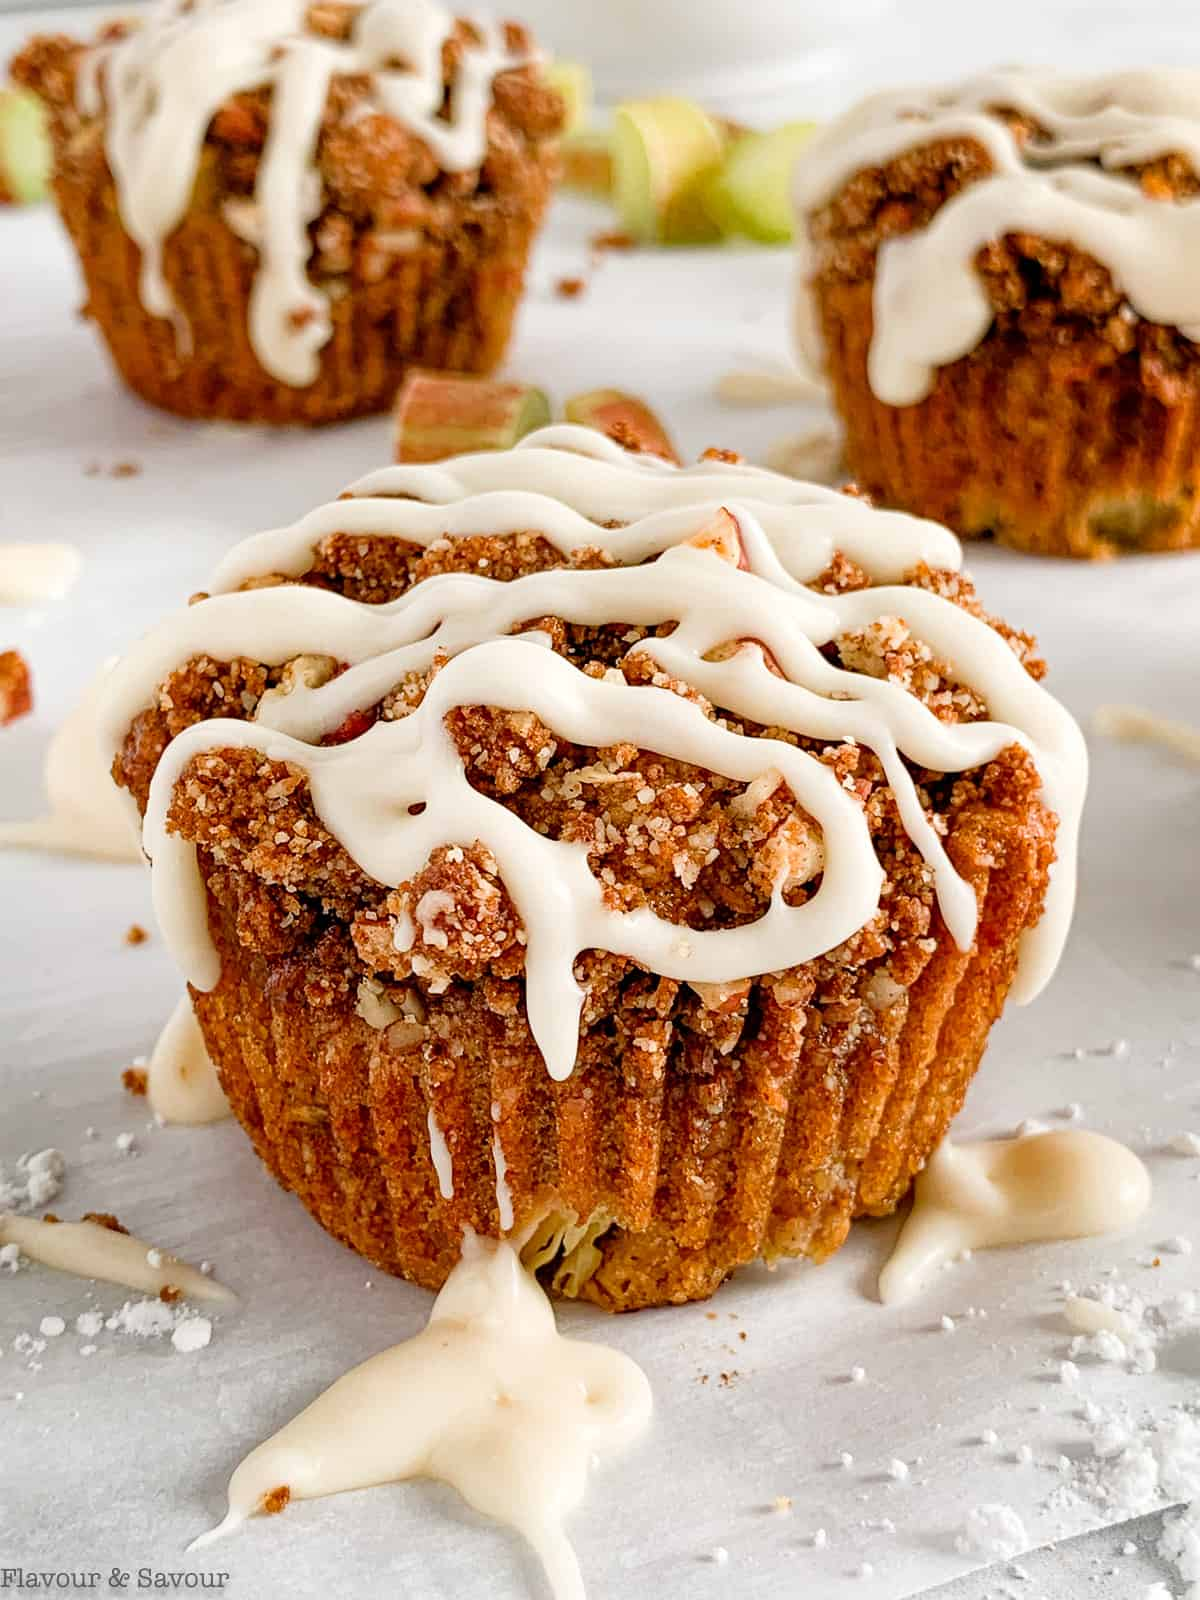 A gluten-free rhubarb muffin with streusel topping and vanilla glaze